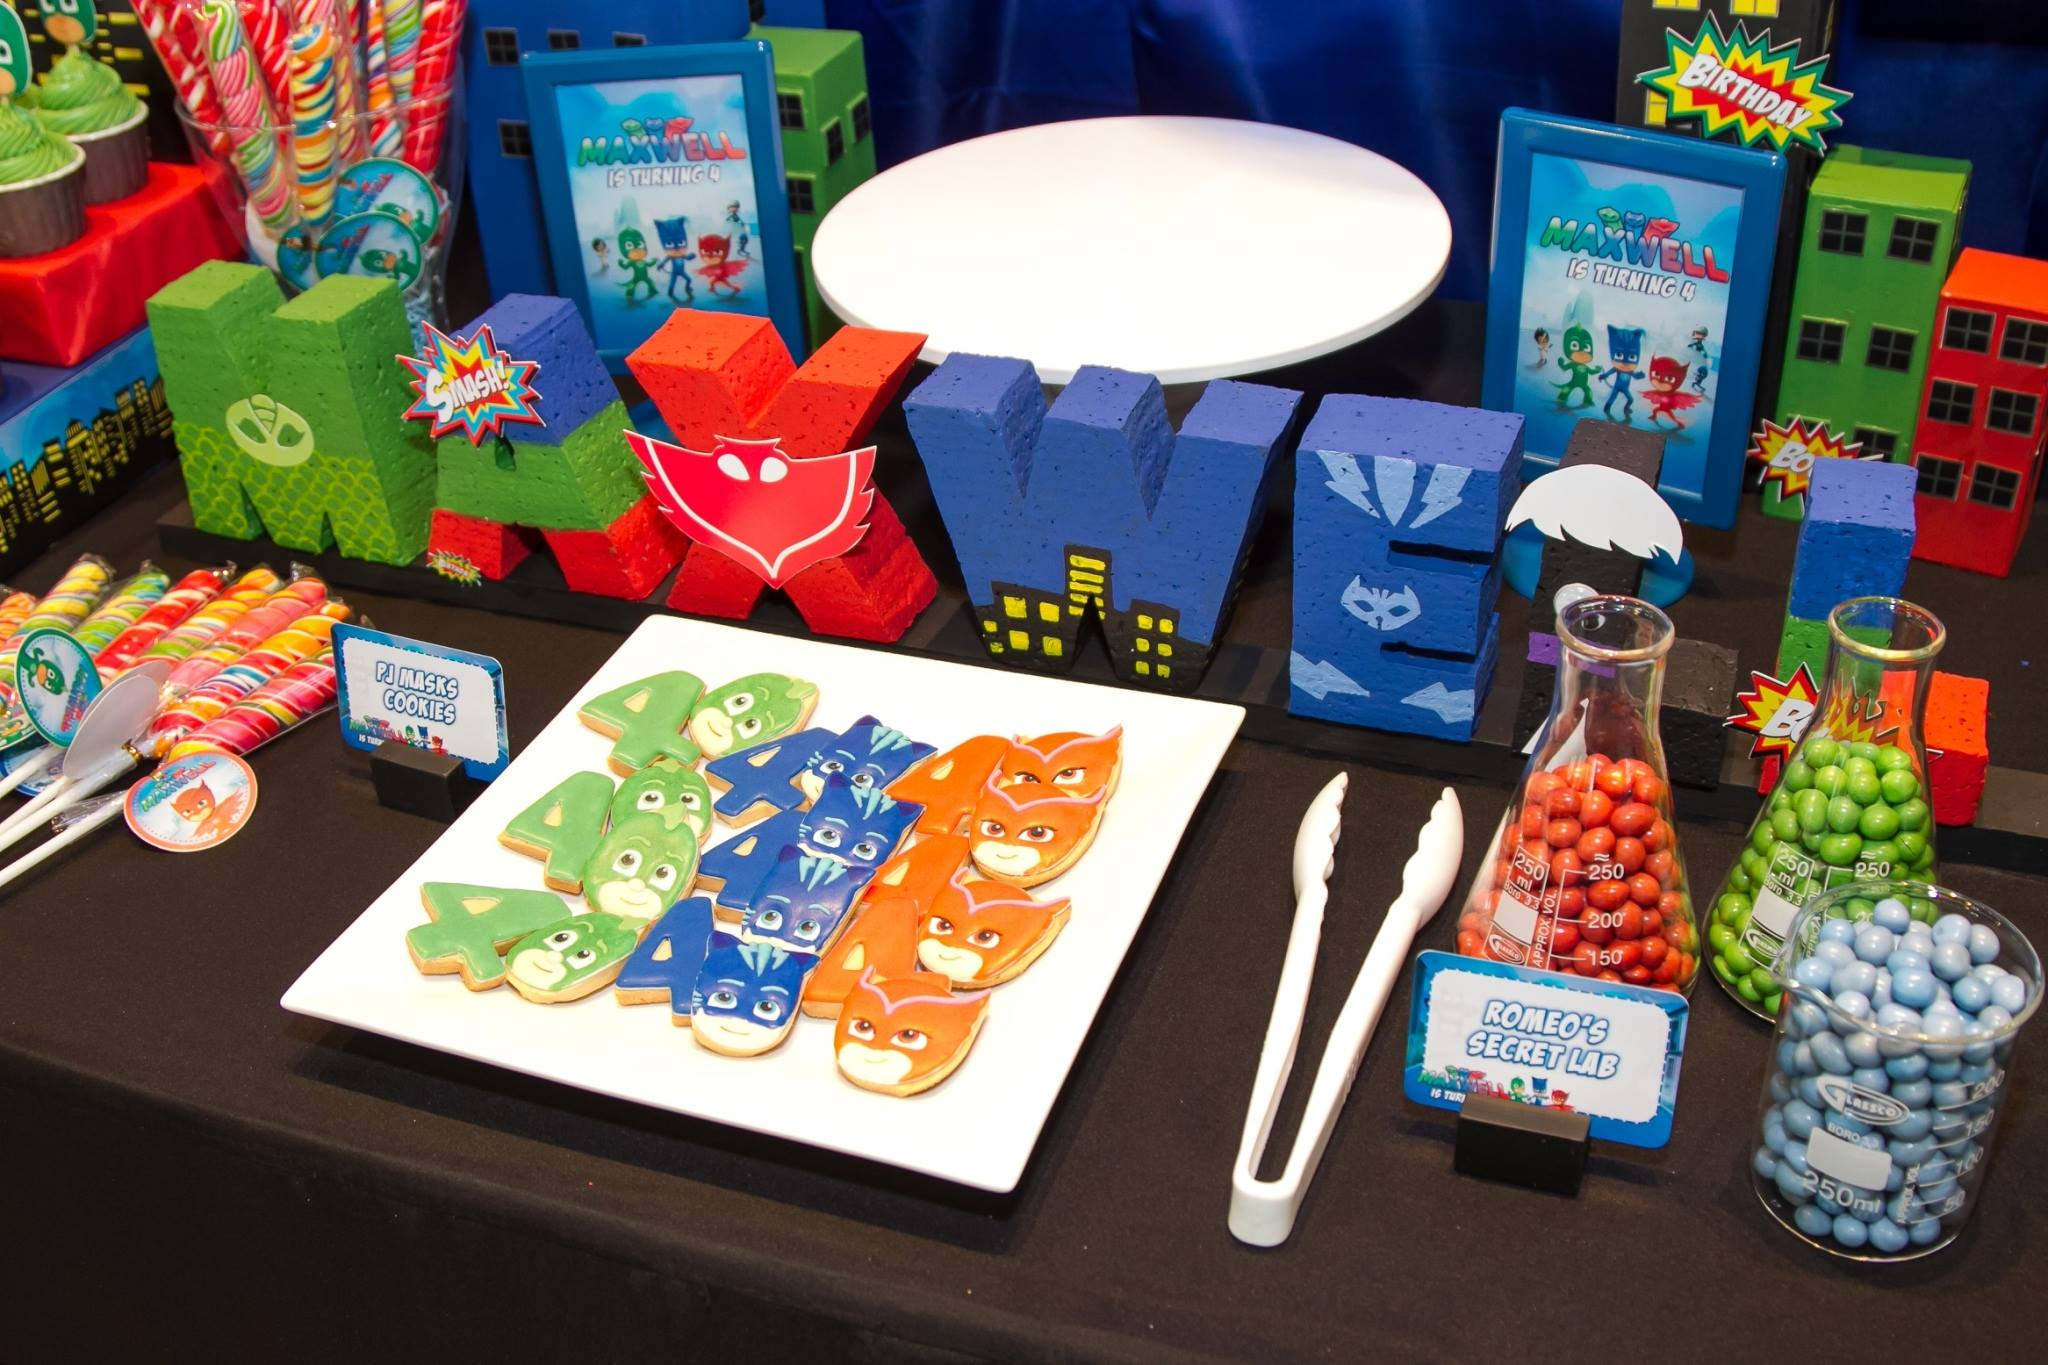 Maxwell's PJ Masks birthday party with cute decorations, backdrop, cake table, kids table, PJ Masks cake and desserts, costumes